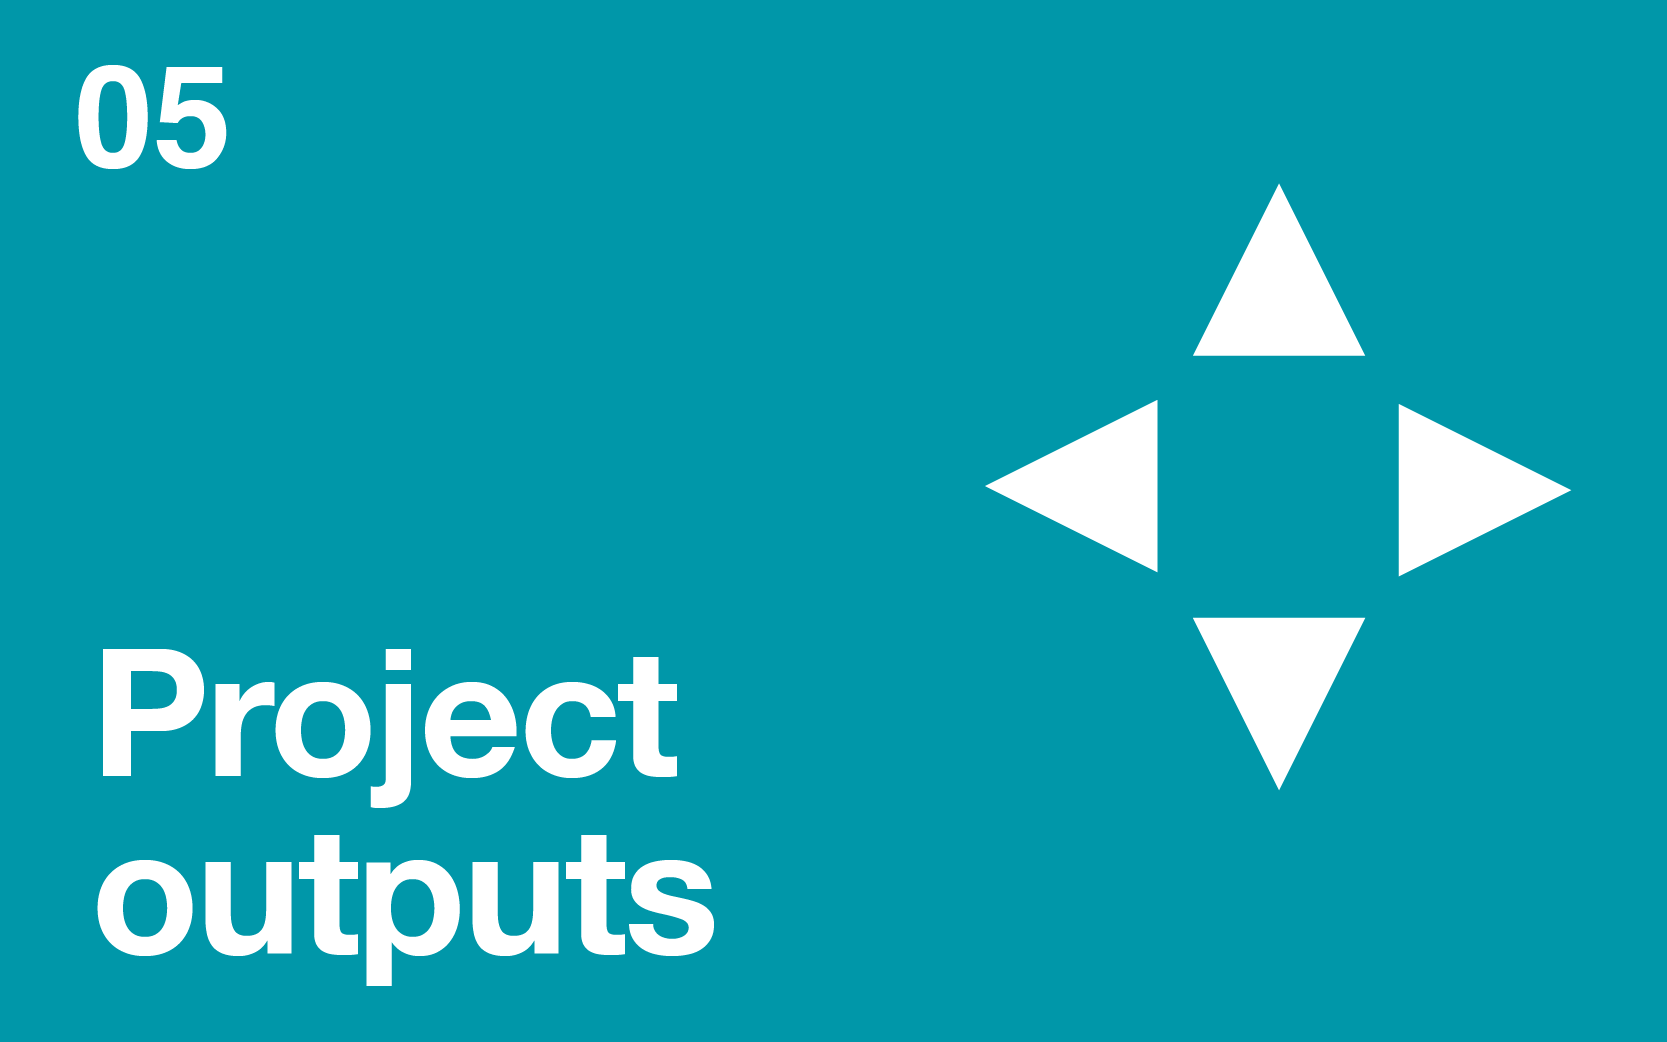 05-Project-outputs-teaser